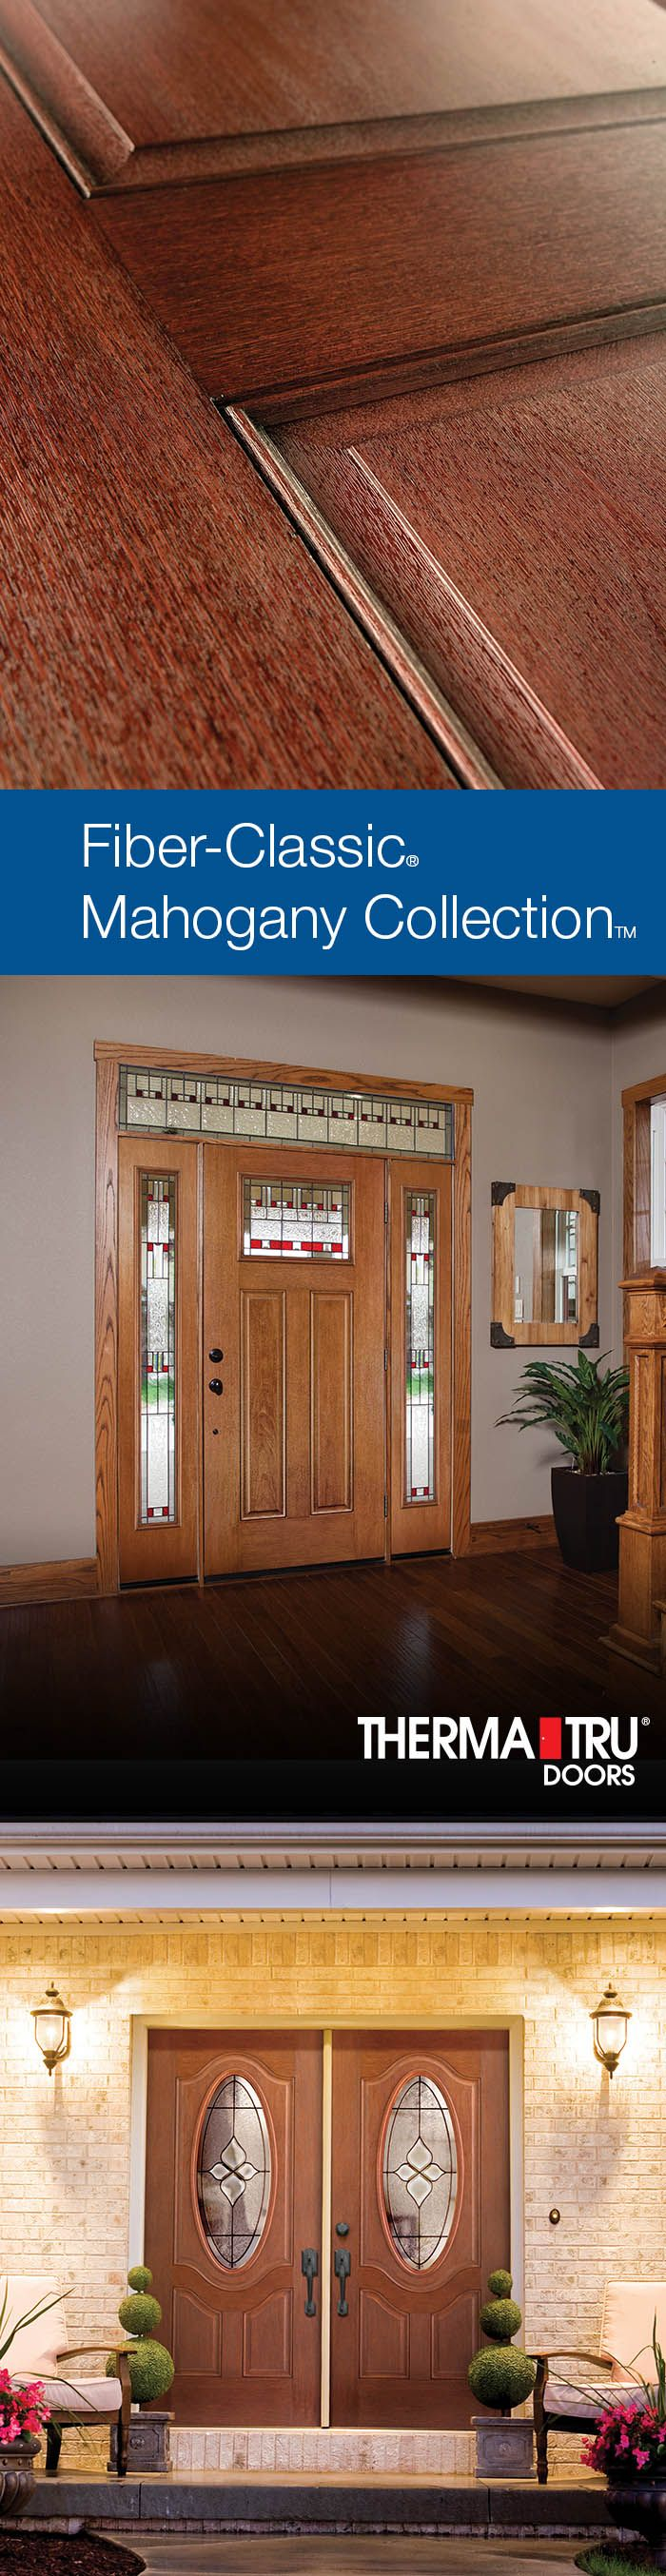 Fiber-Classic Mahogany Collection doors feature deep Mahogany graining to complement homes with richer wood tones.